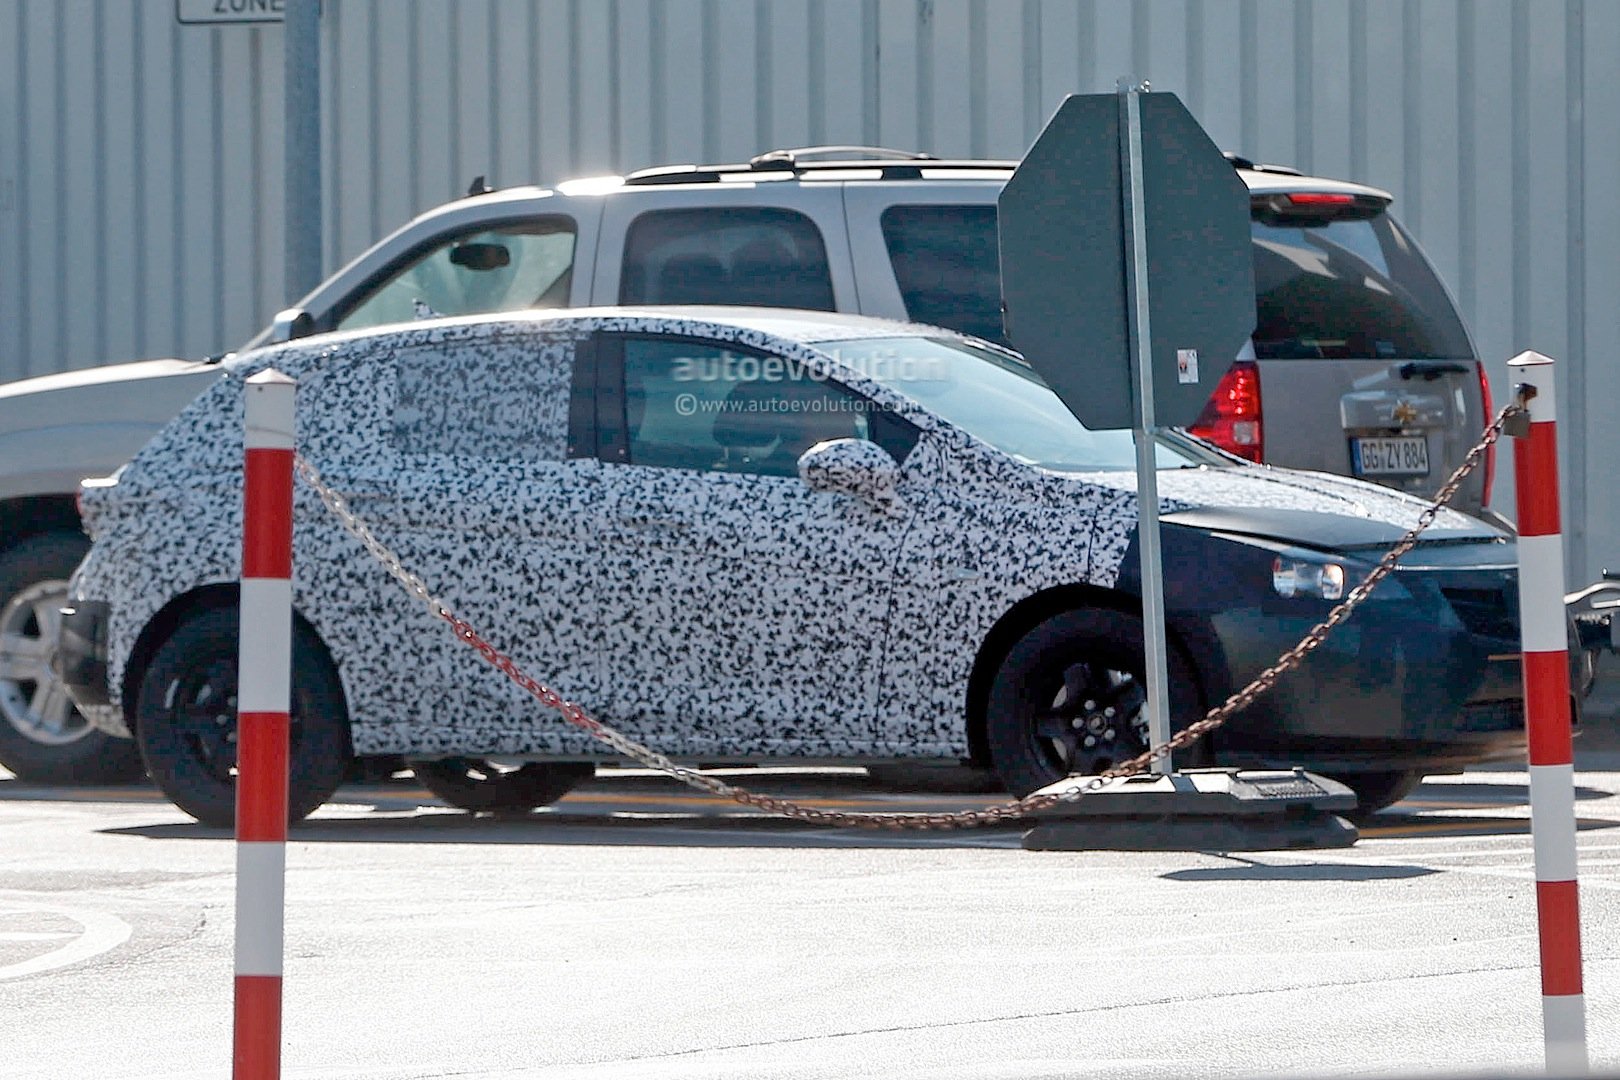 [2015] Opel ASTRA K New-opel-astra-k-7th-generation-spied-in-detail-photo-gallery_3